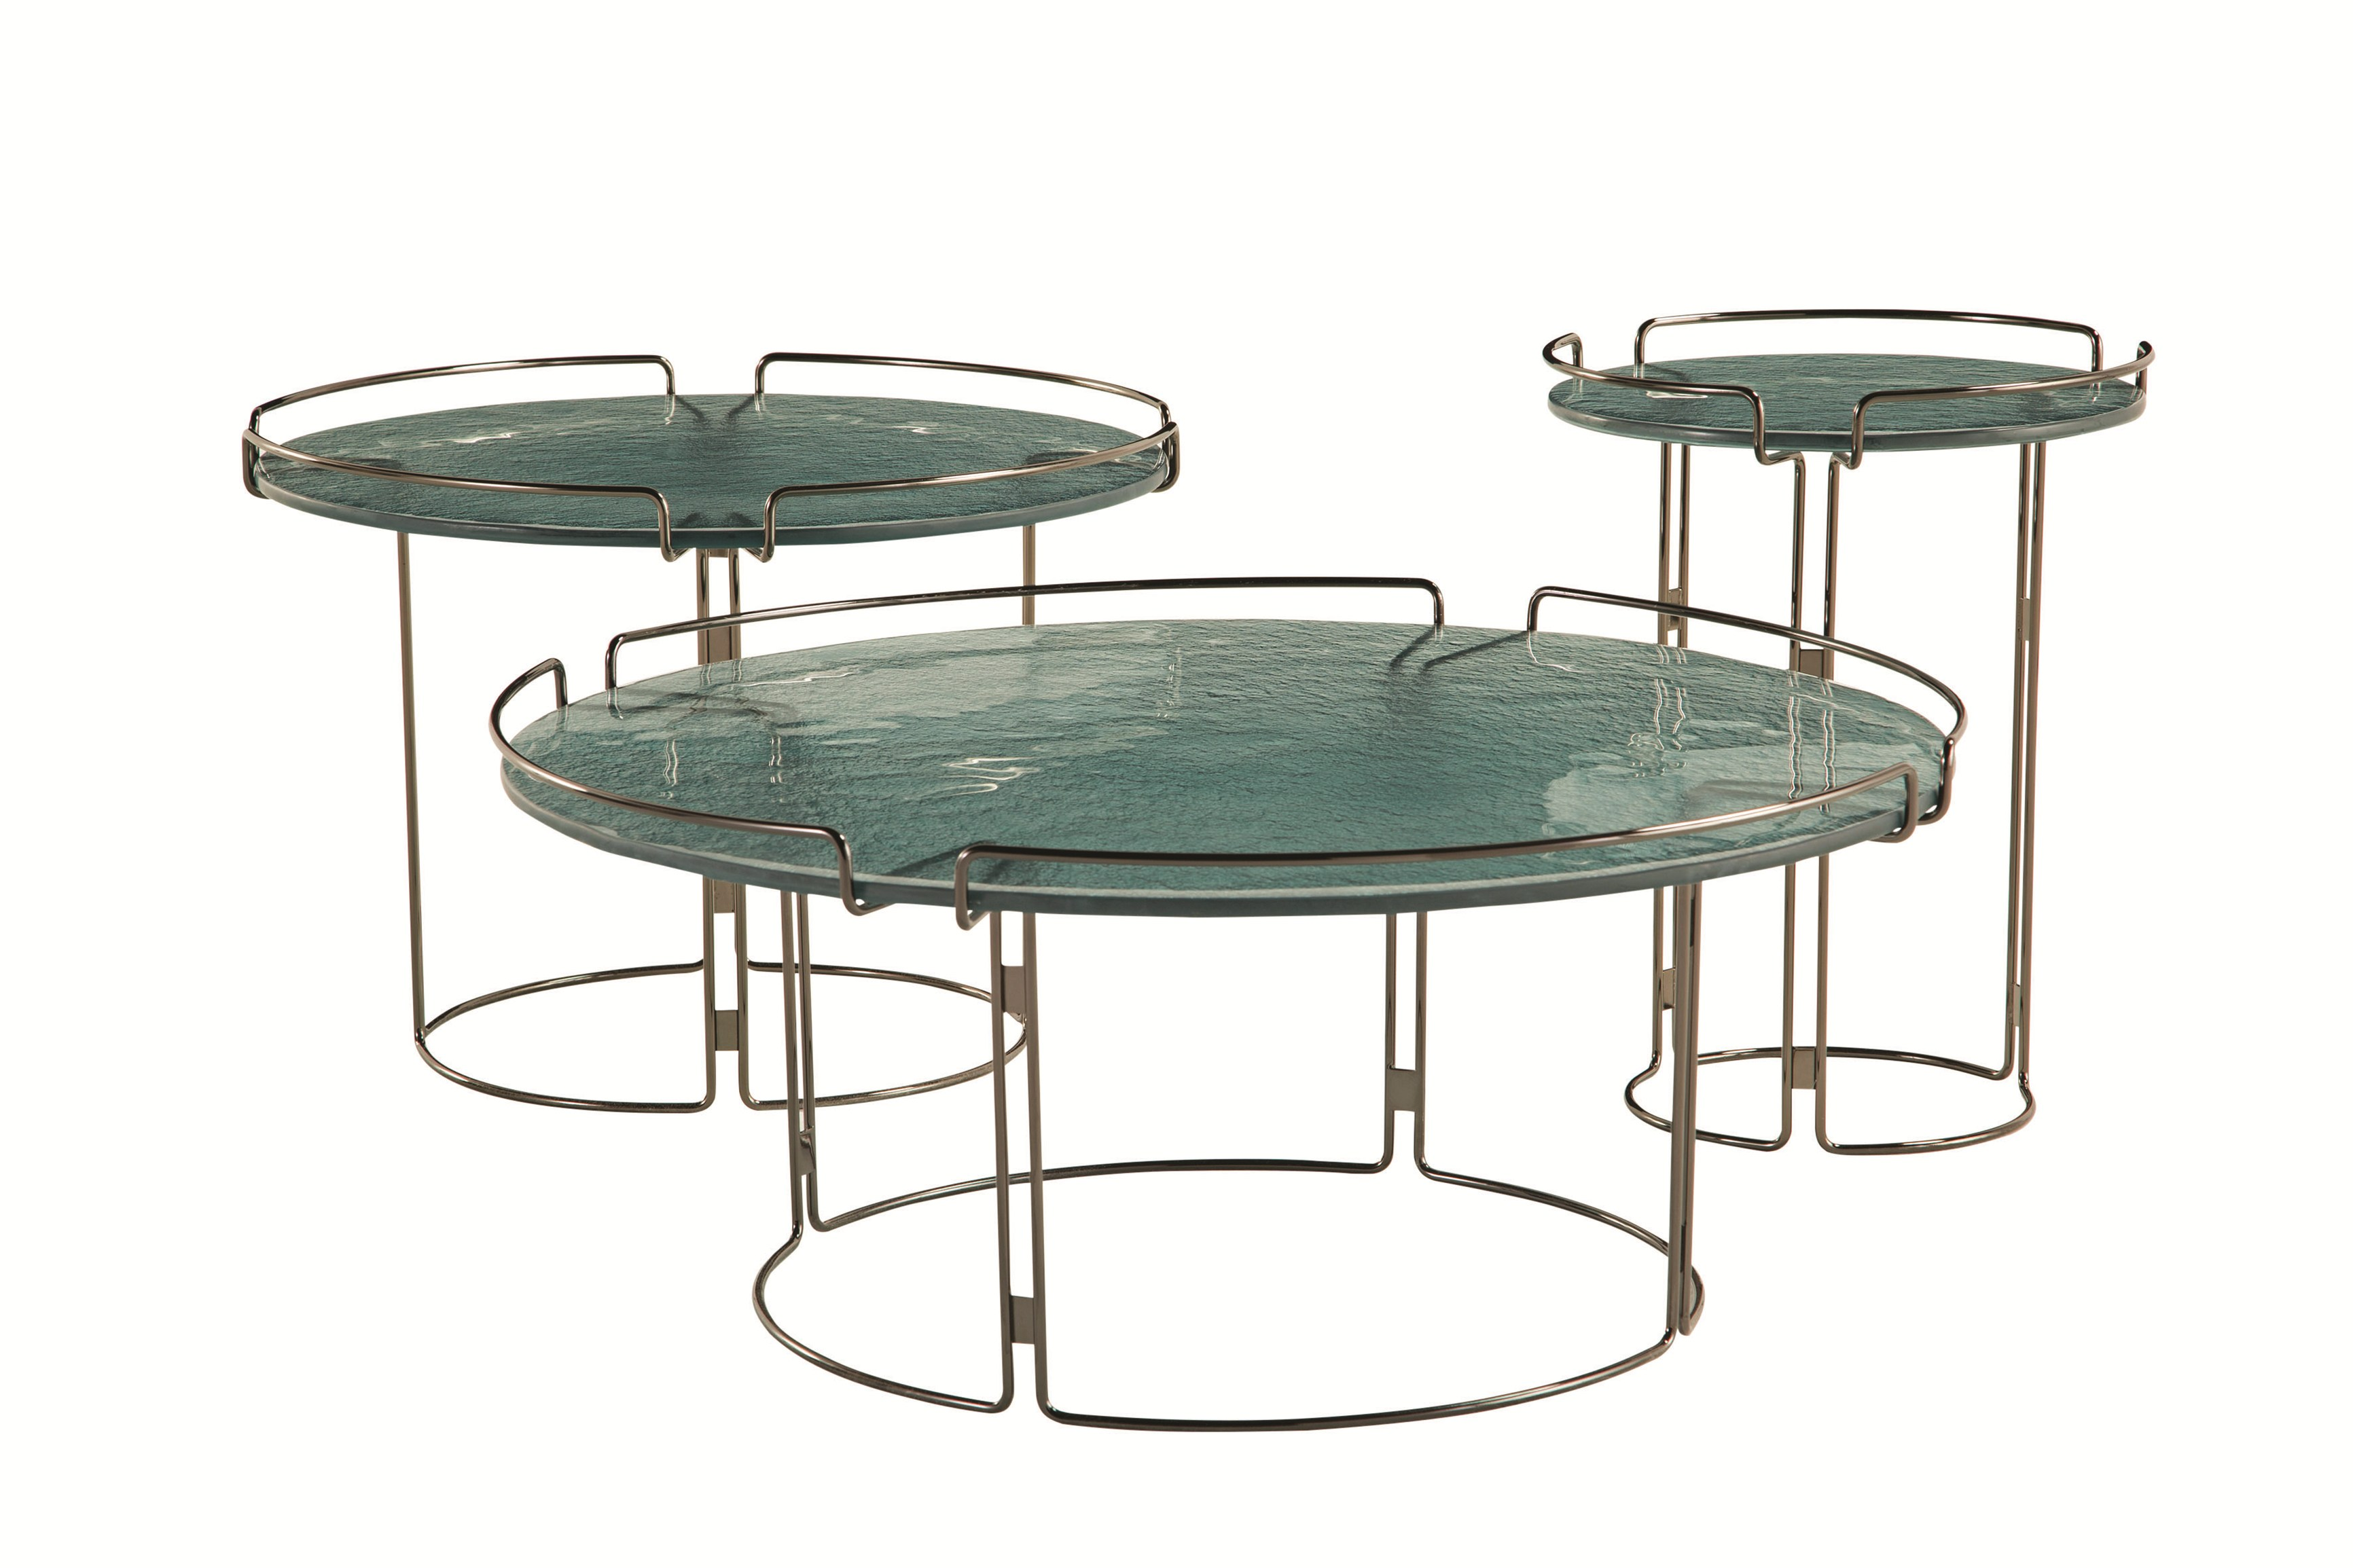 Table basse ronde en marbre bijou by roche bobois design - Table ronde en marbre ...